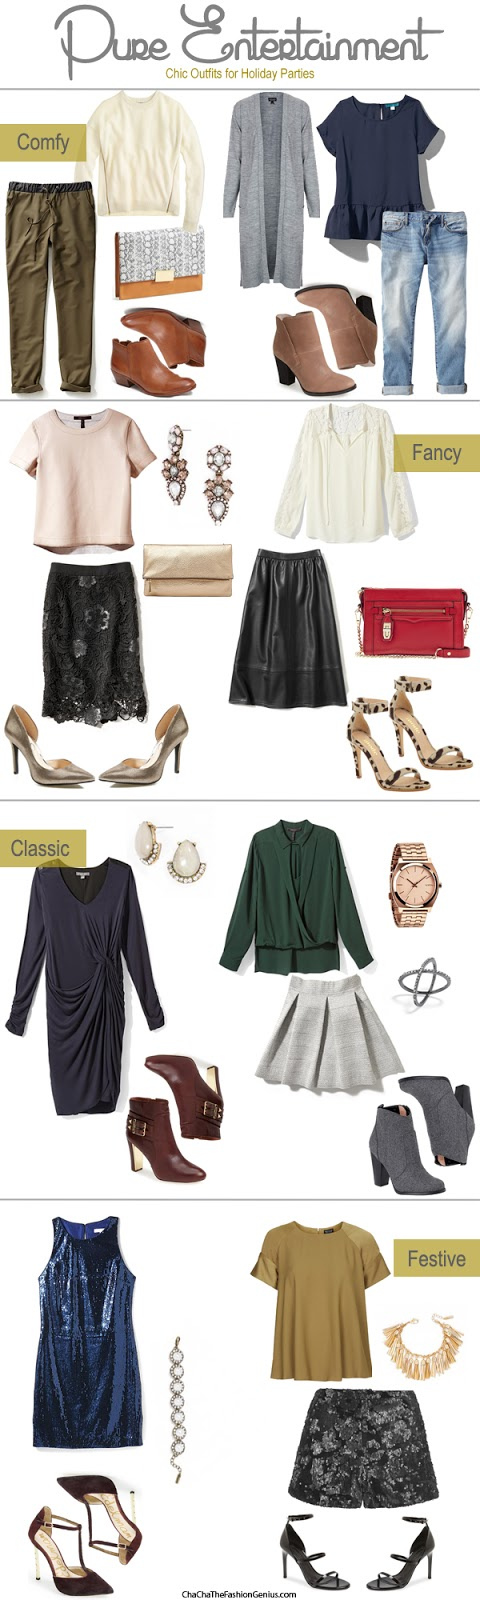 Holiday Party Outfit Ideas {Comfy, Fancy, Classic, & Festive}